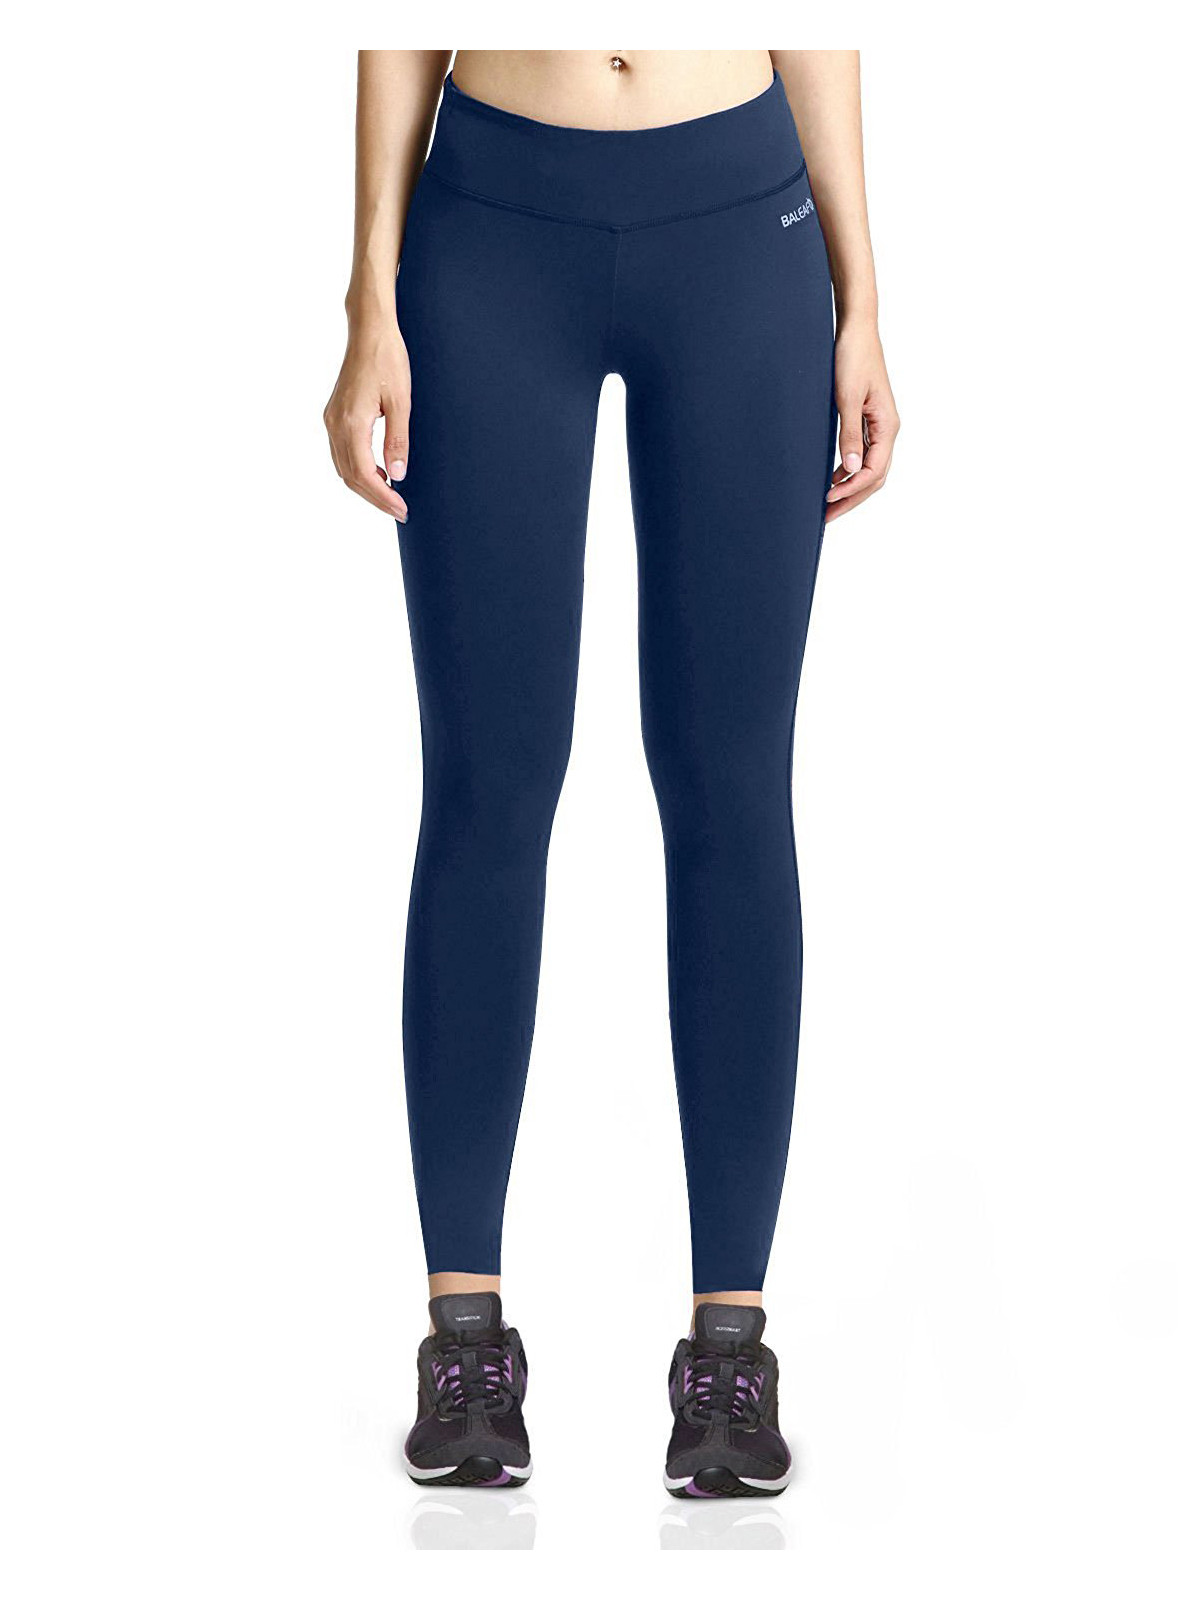 Women's Ankle Legging Inner Pocket Non See-through Fabric Dark Blue